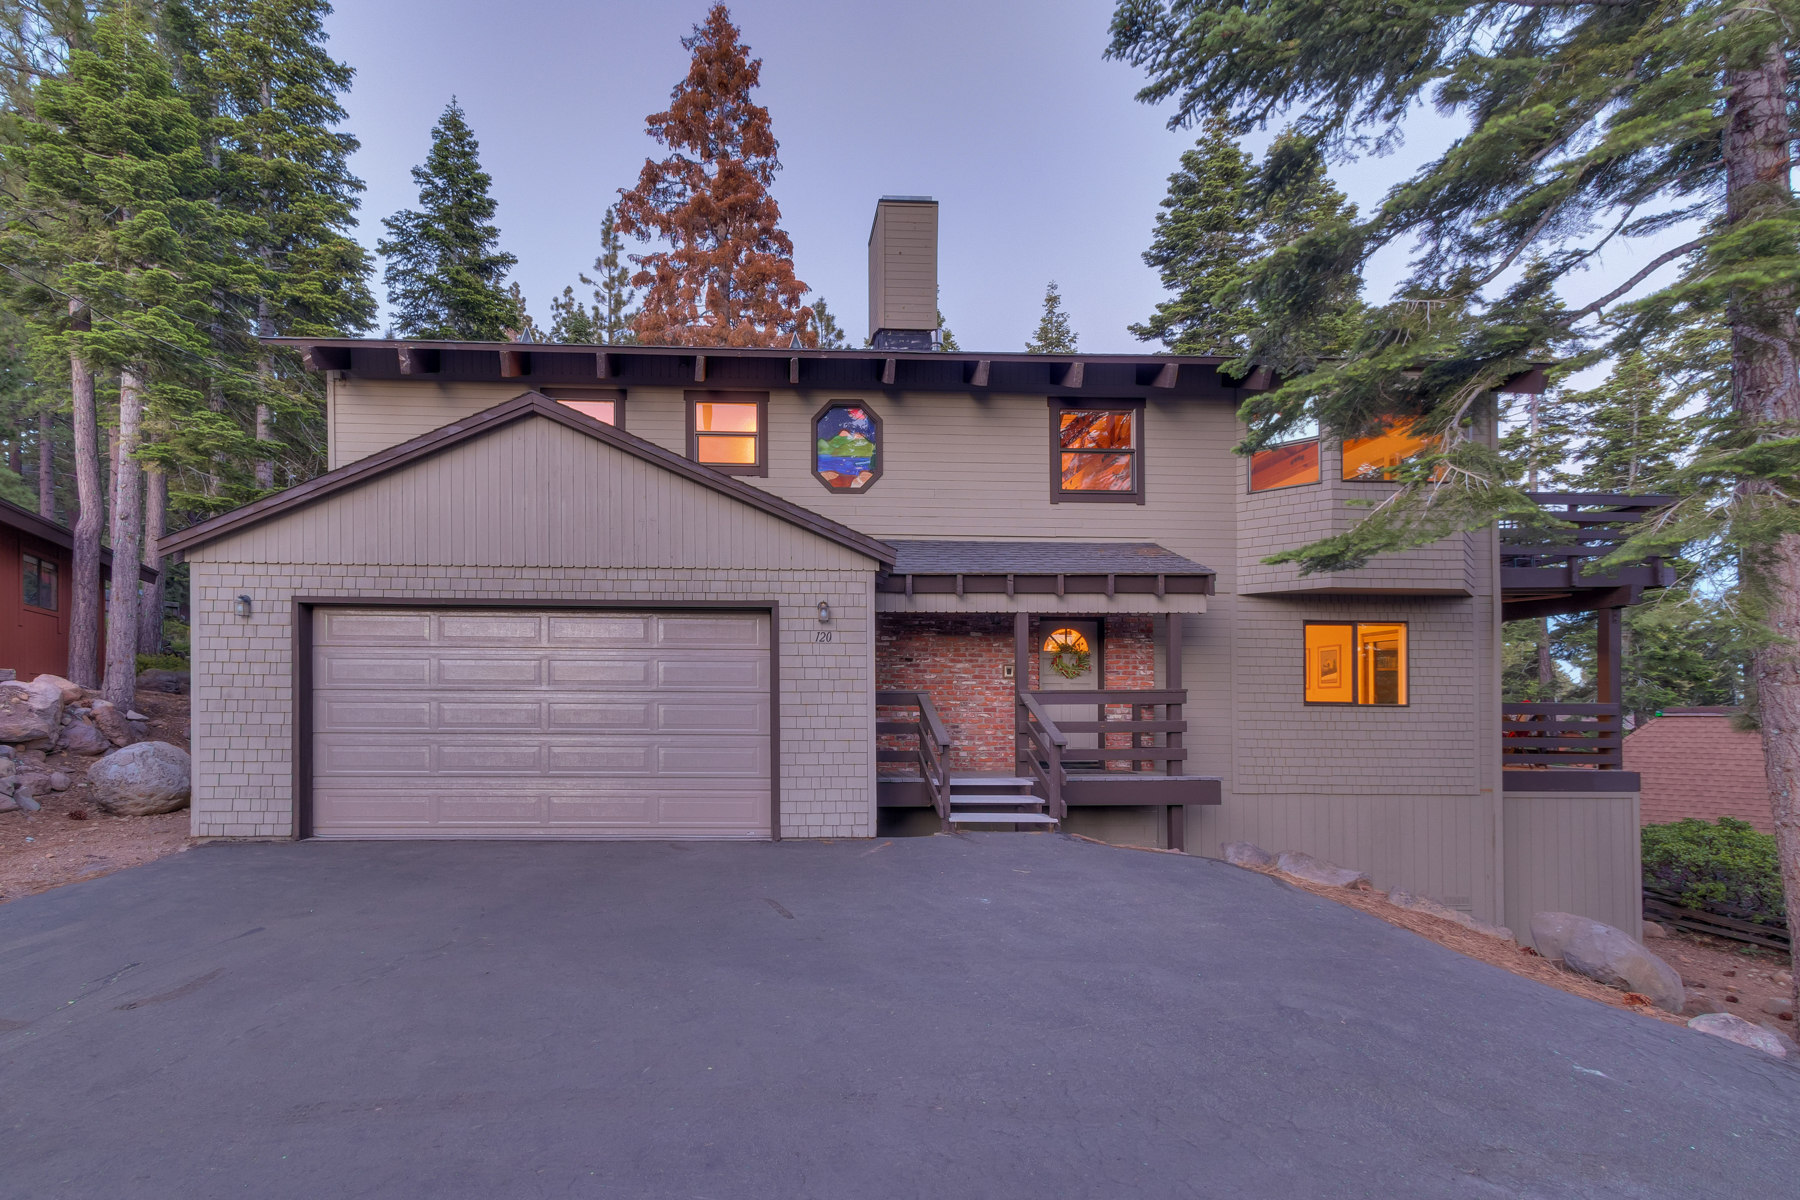 Single Family Home for Active at 120 Lakewood Lane, Tahoe City, CA Tahoe City, California 96145 United States